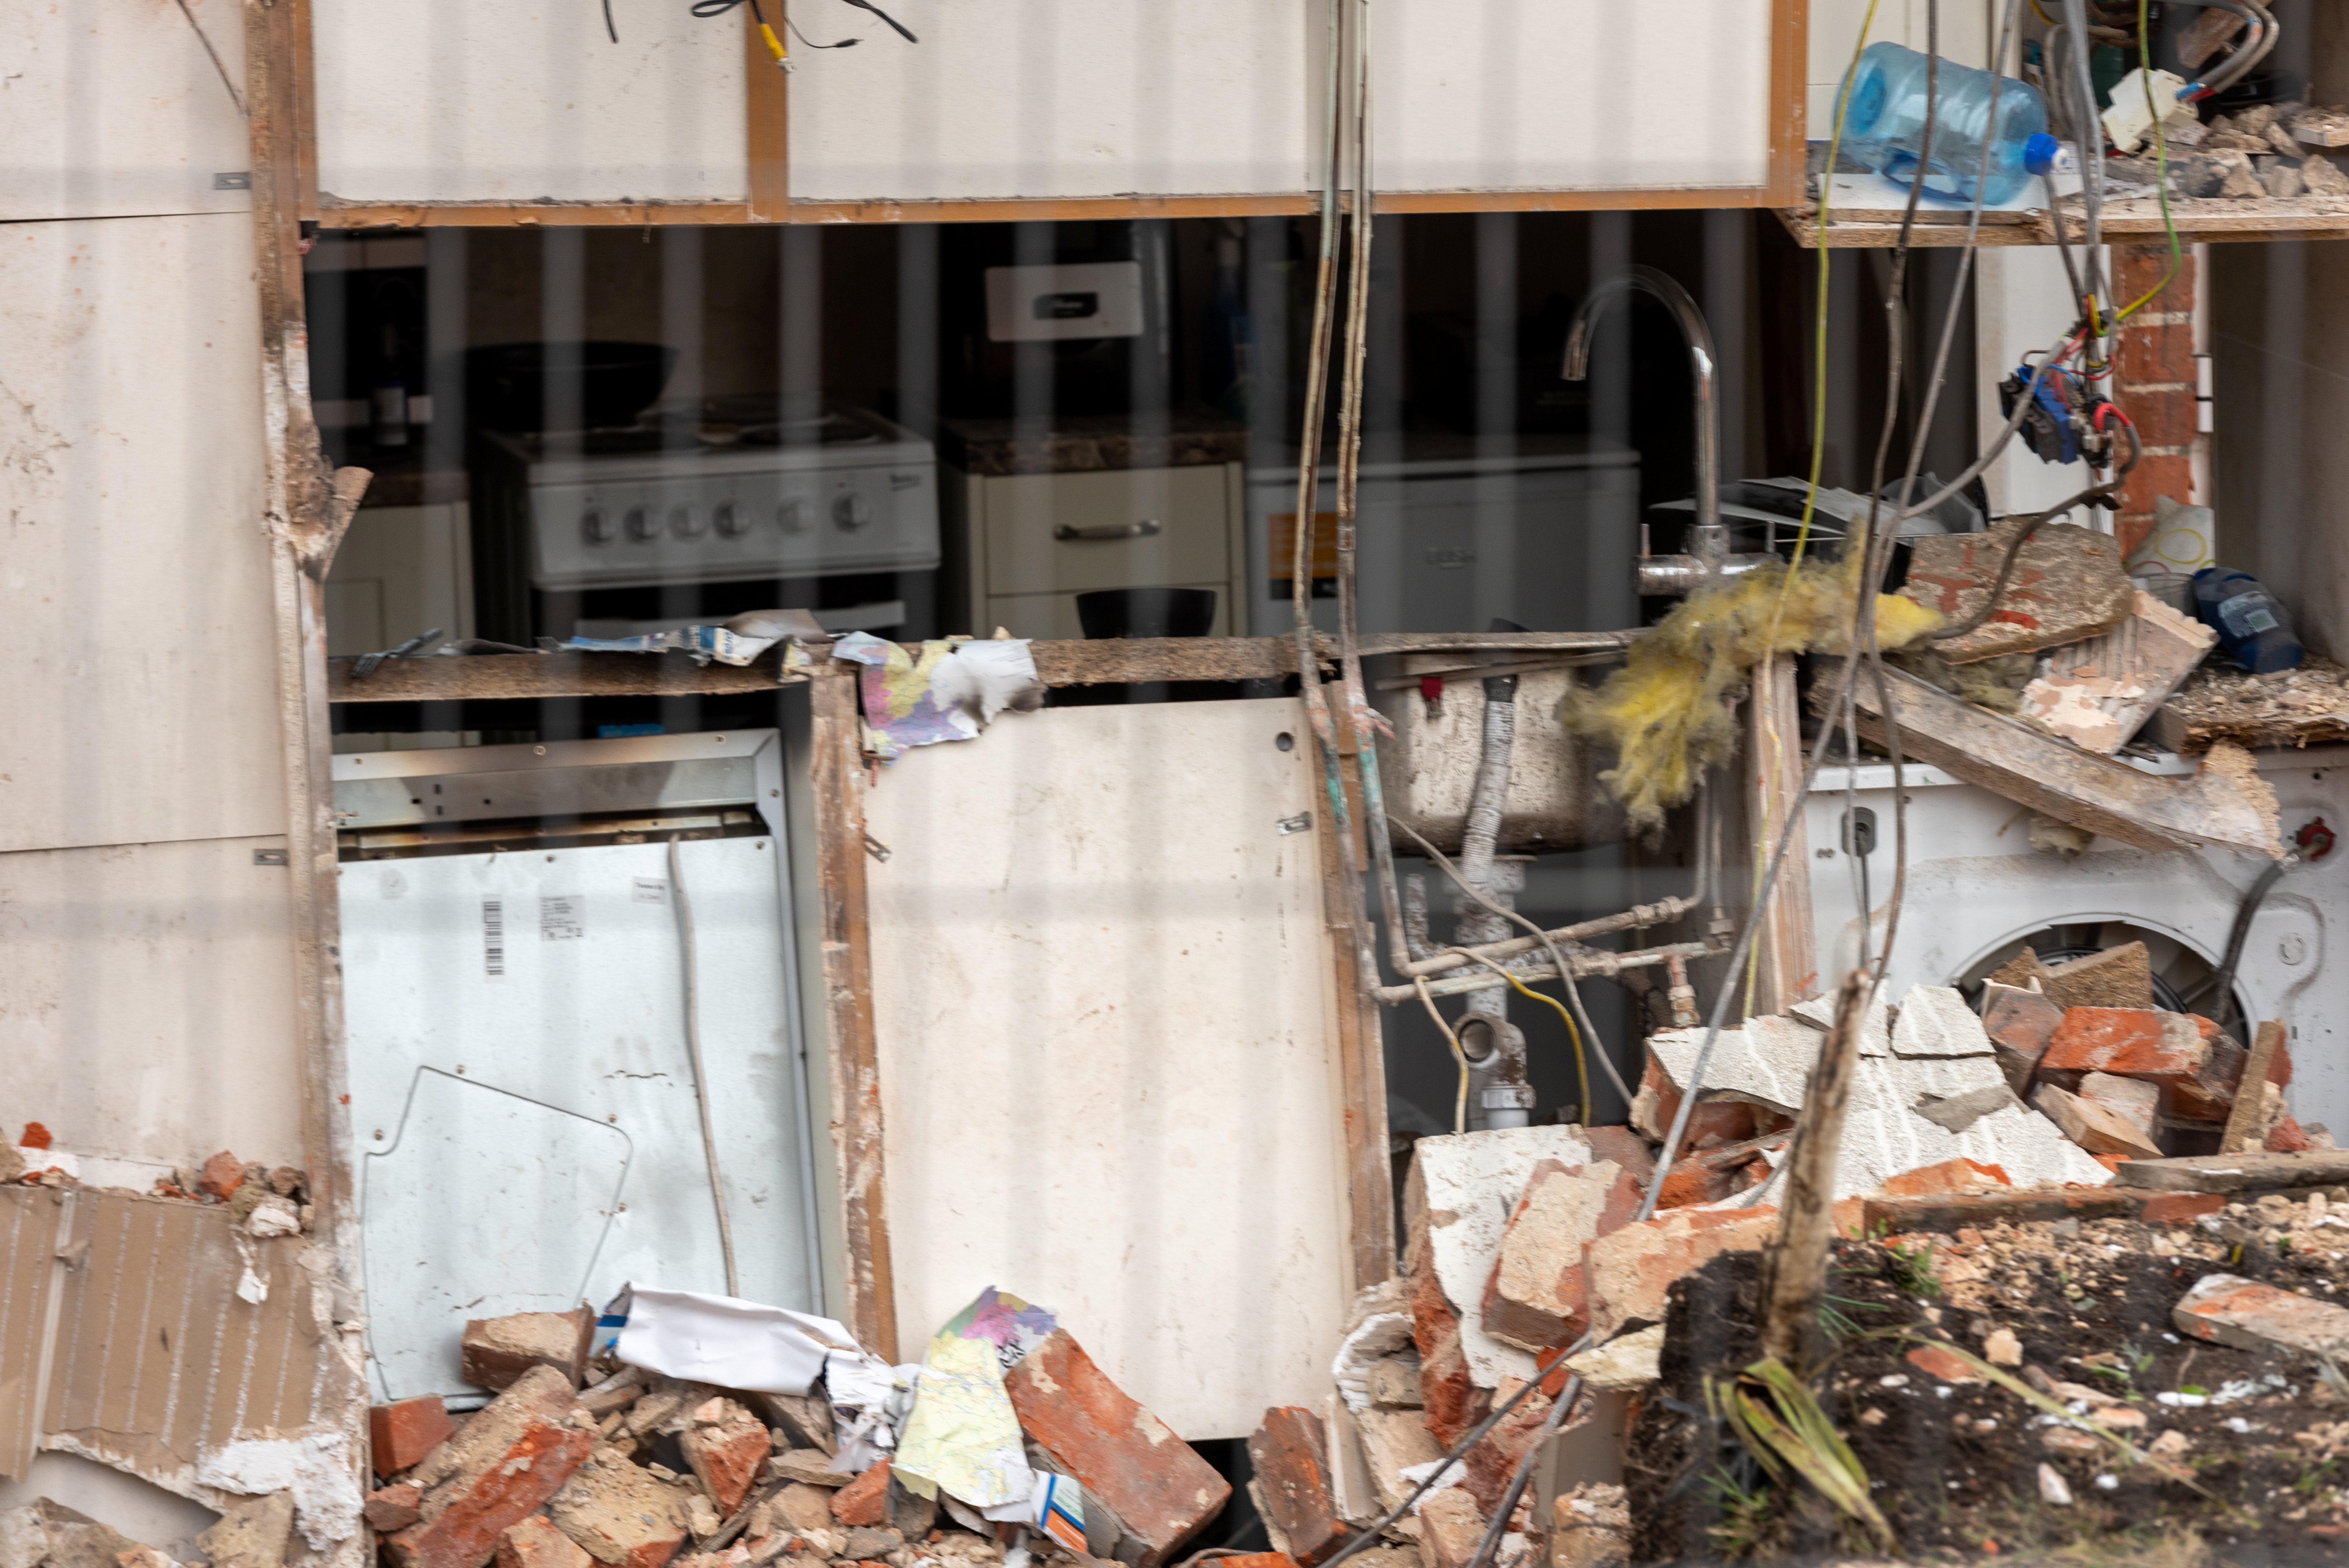 The house explosion in Kessingland, near Lowestoft, Suffolk left the entire property exposed. (SWNS)